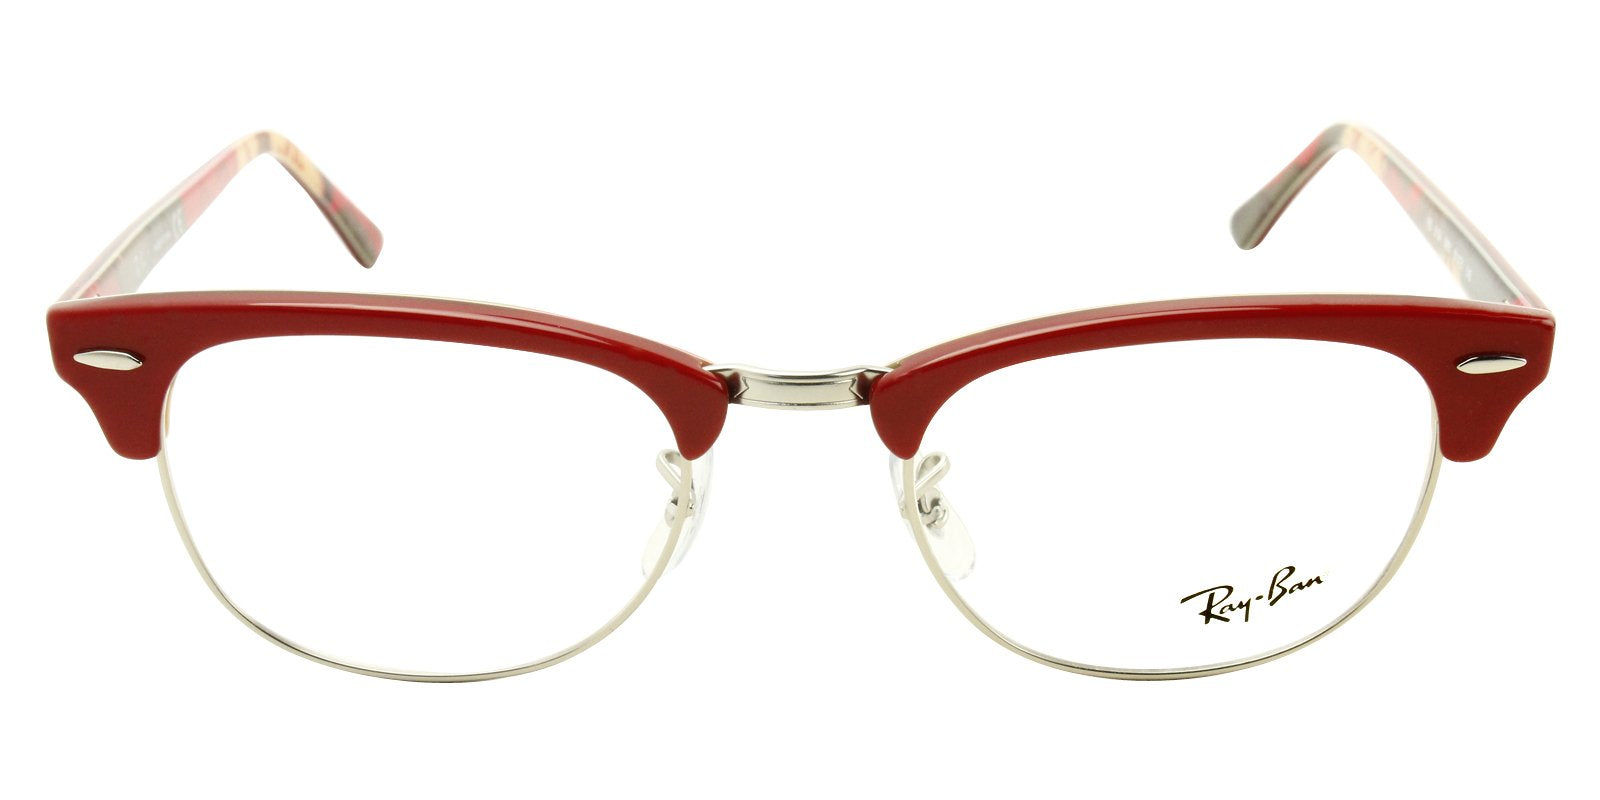 Ray Ban Rx - RX5154 Red Oval Women Eyeglasses - 51mm-Eyeglasses-Designer Eyes